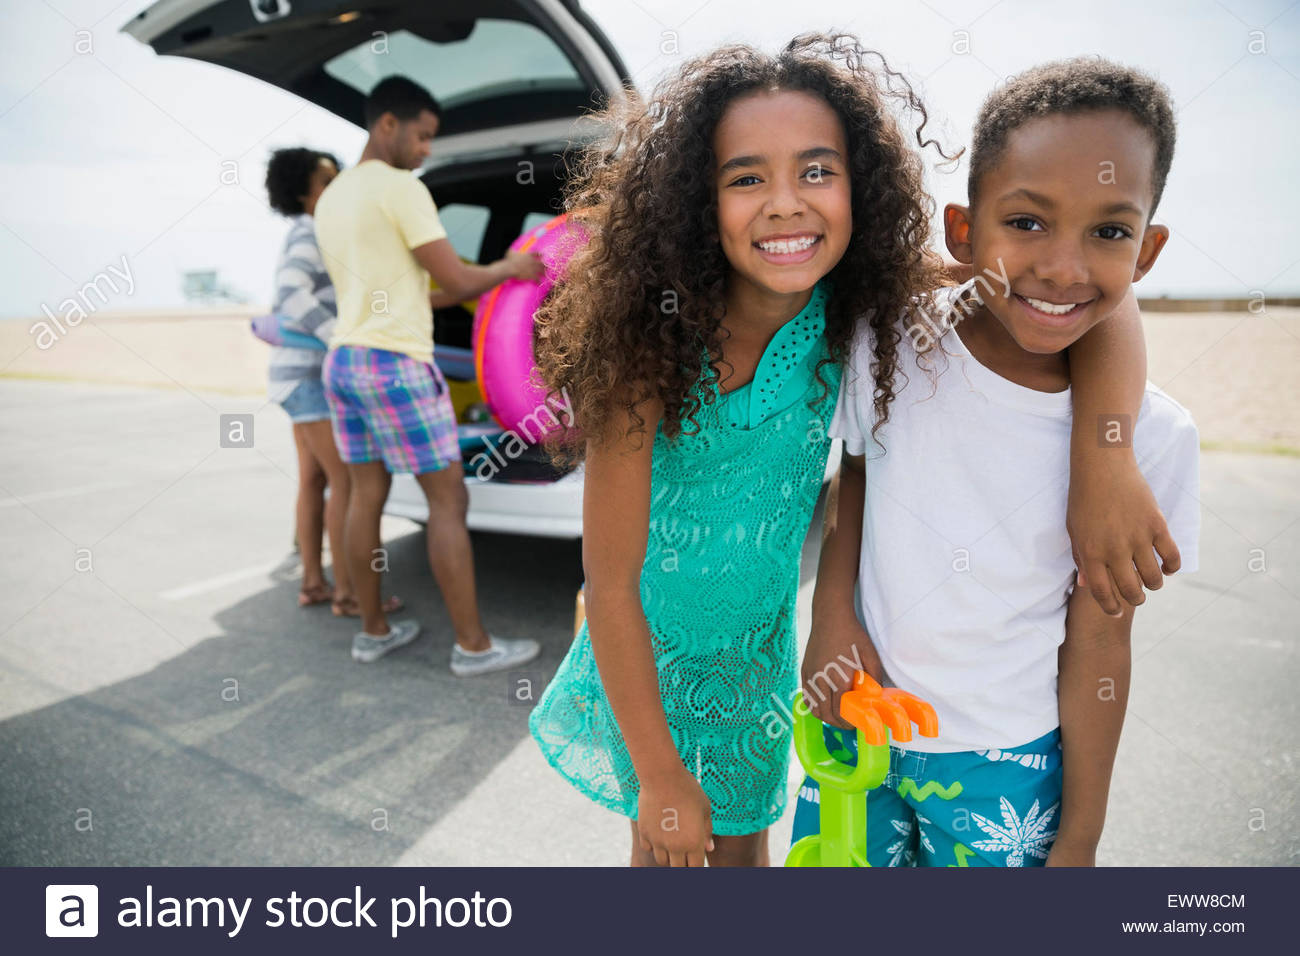 Portrait enthusiastic brother and sister arriving at beach - Stock Image